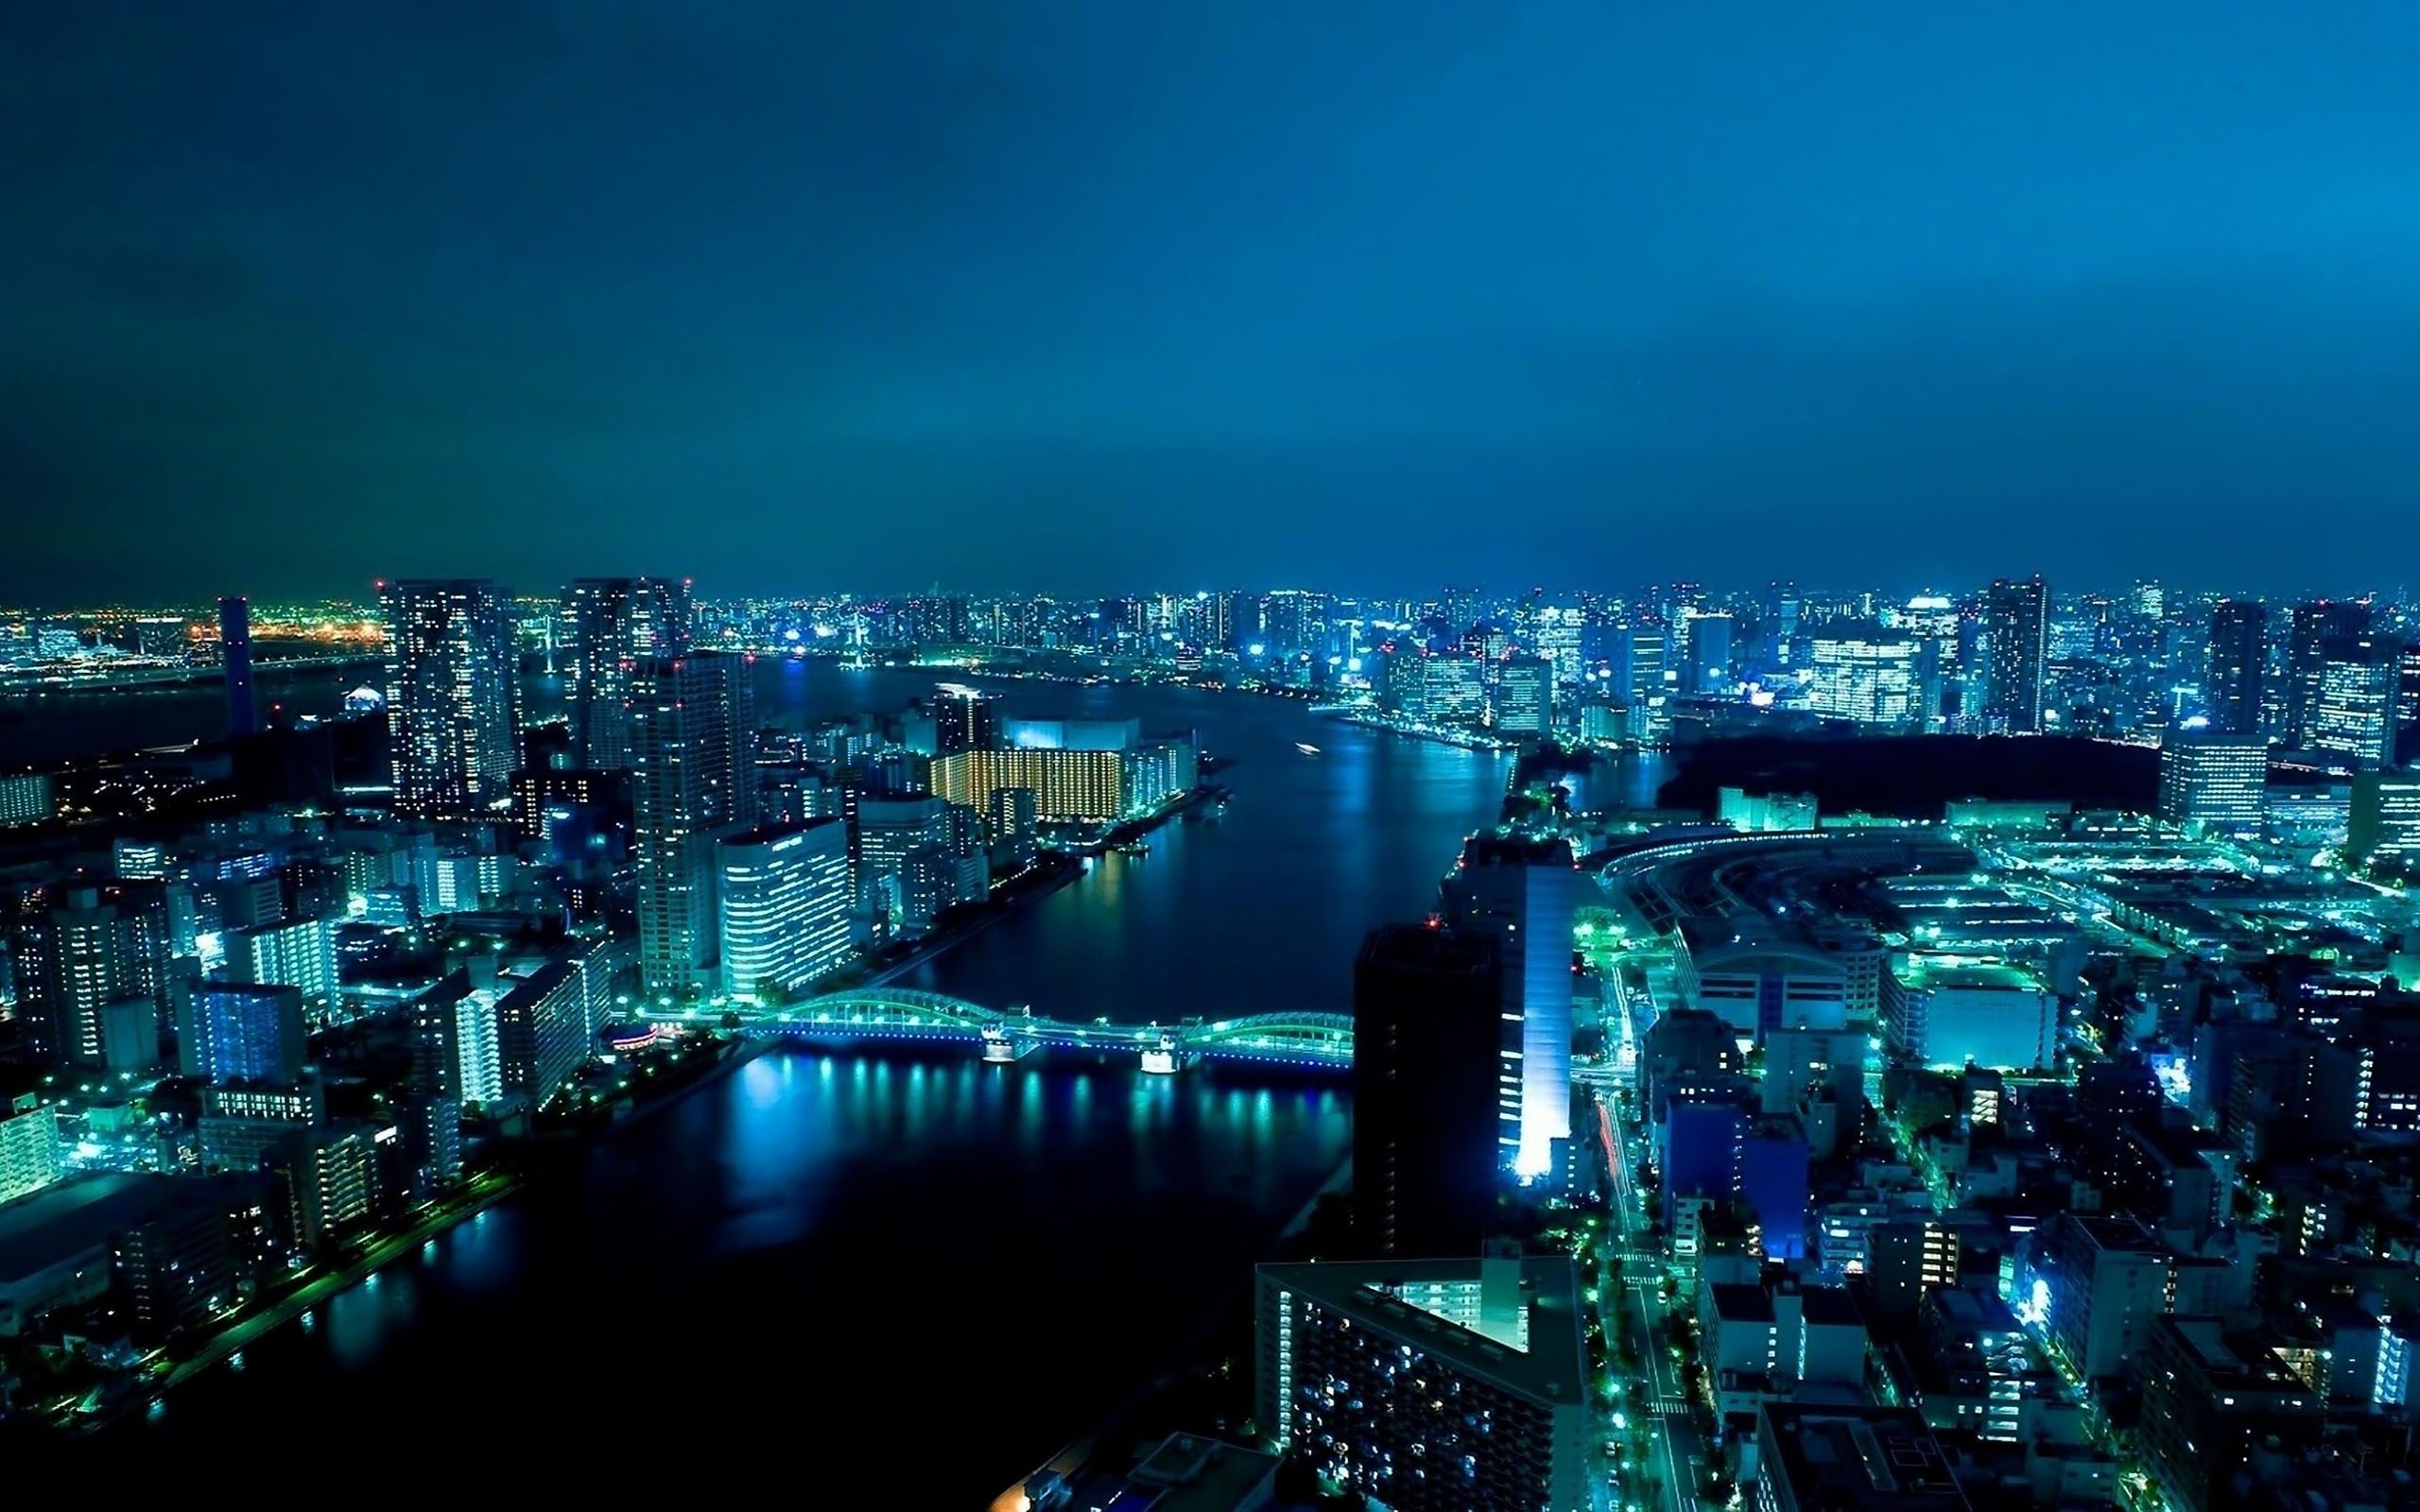 japan tokyo | nighttime view of the Tokyo waterfront, with Eitai Bridge in the .